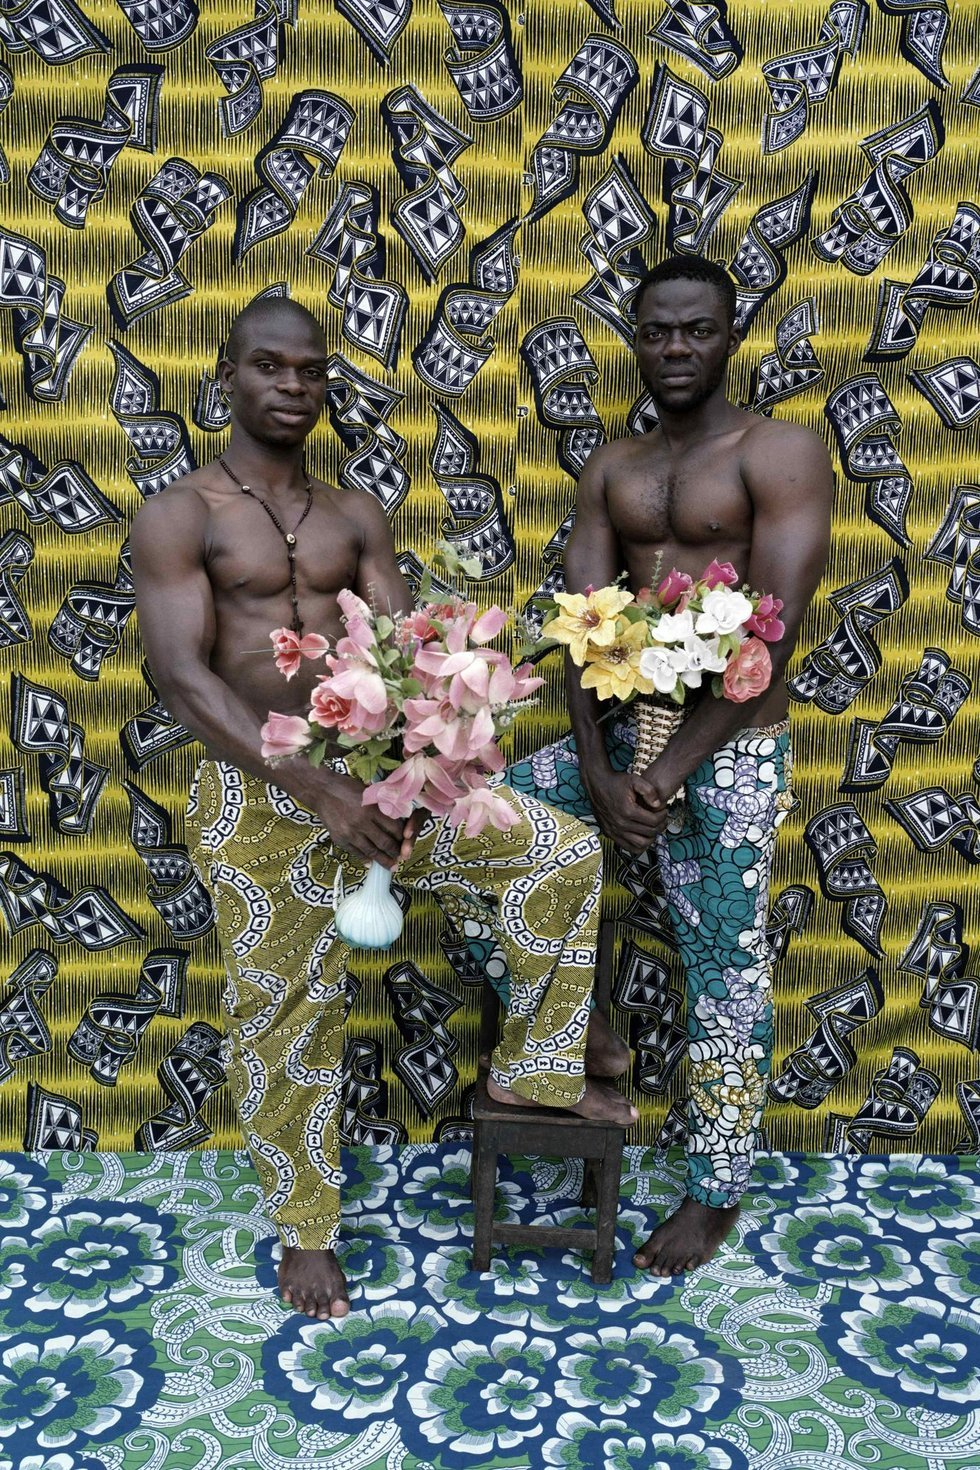 africanmag:  From Citizens of Porto-Novo by Beninese photog Leonce Raphael Agbodjelou, on display at London's Jack Bell Gallery till May 25.